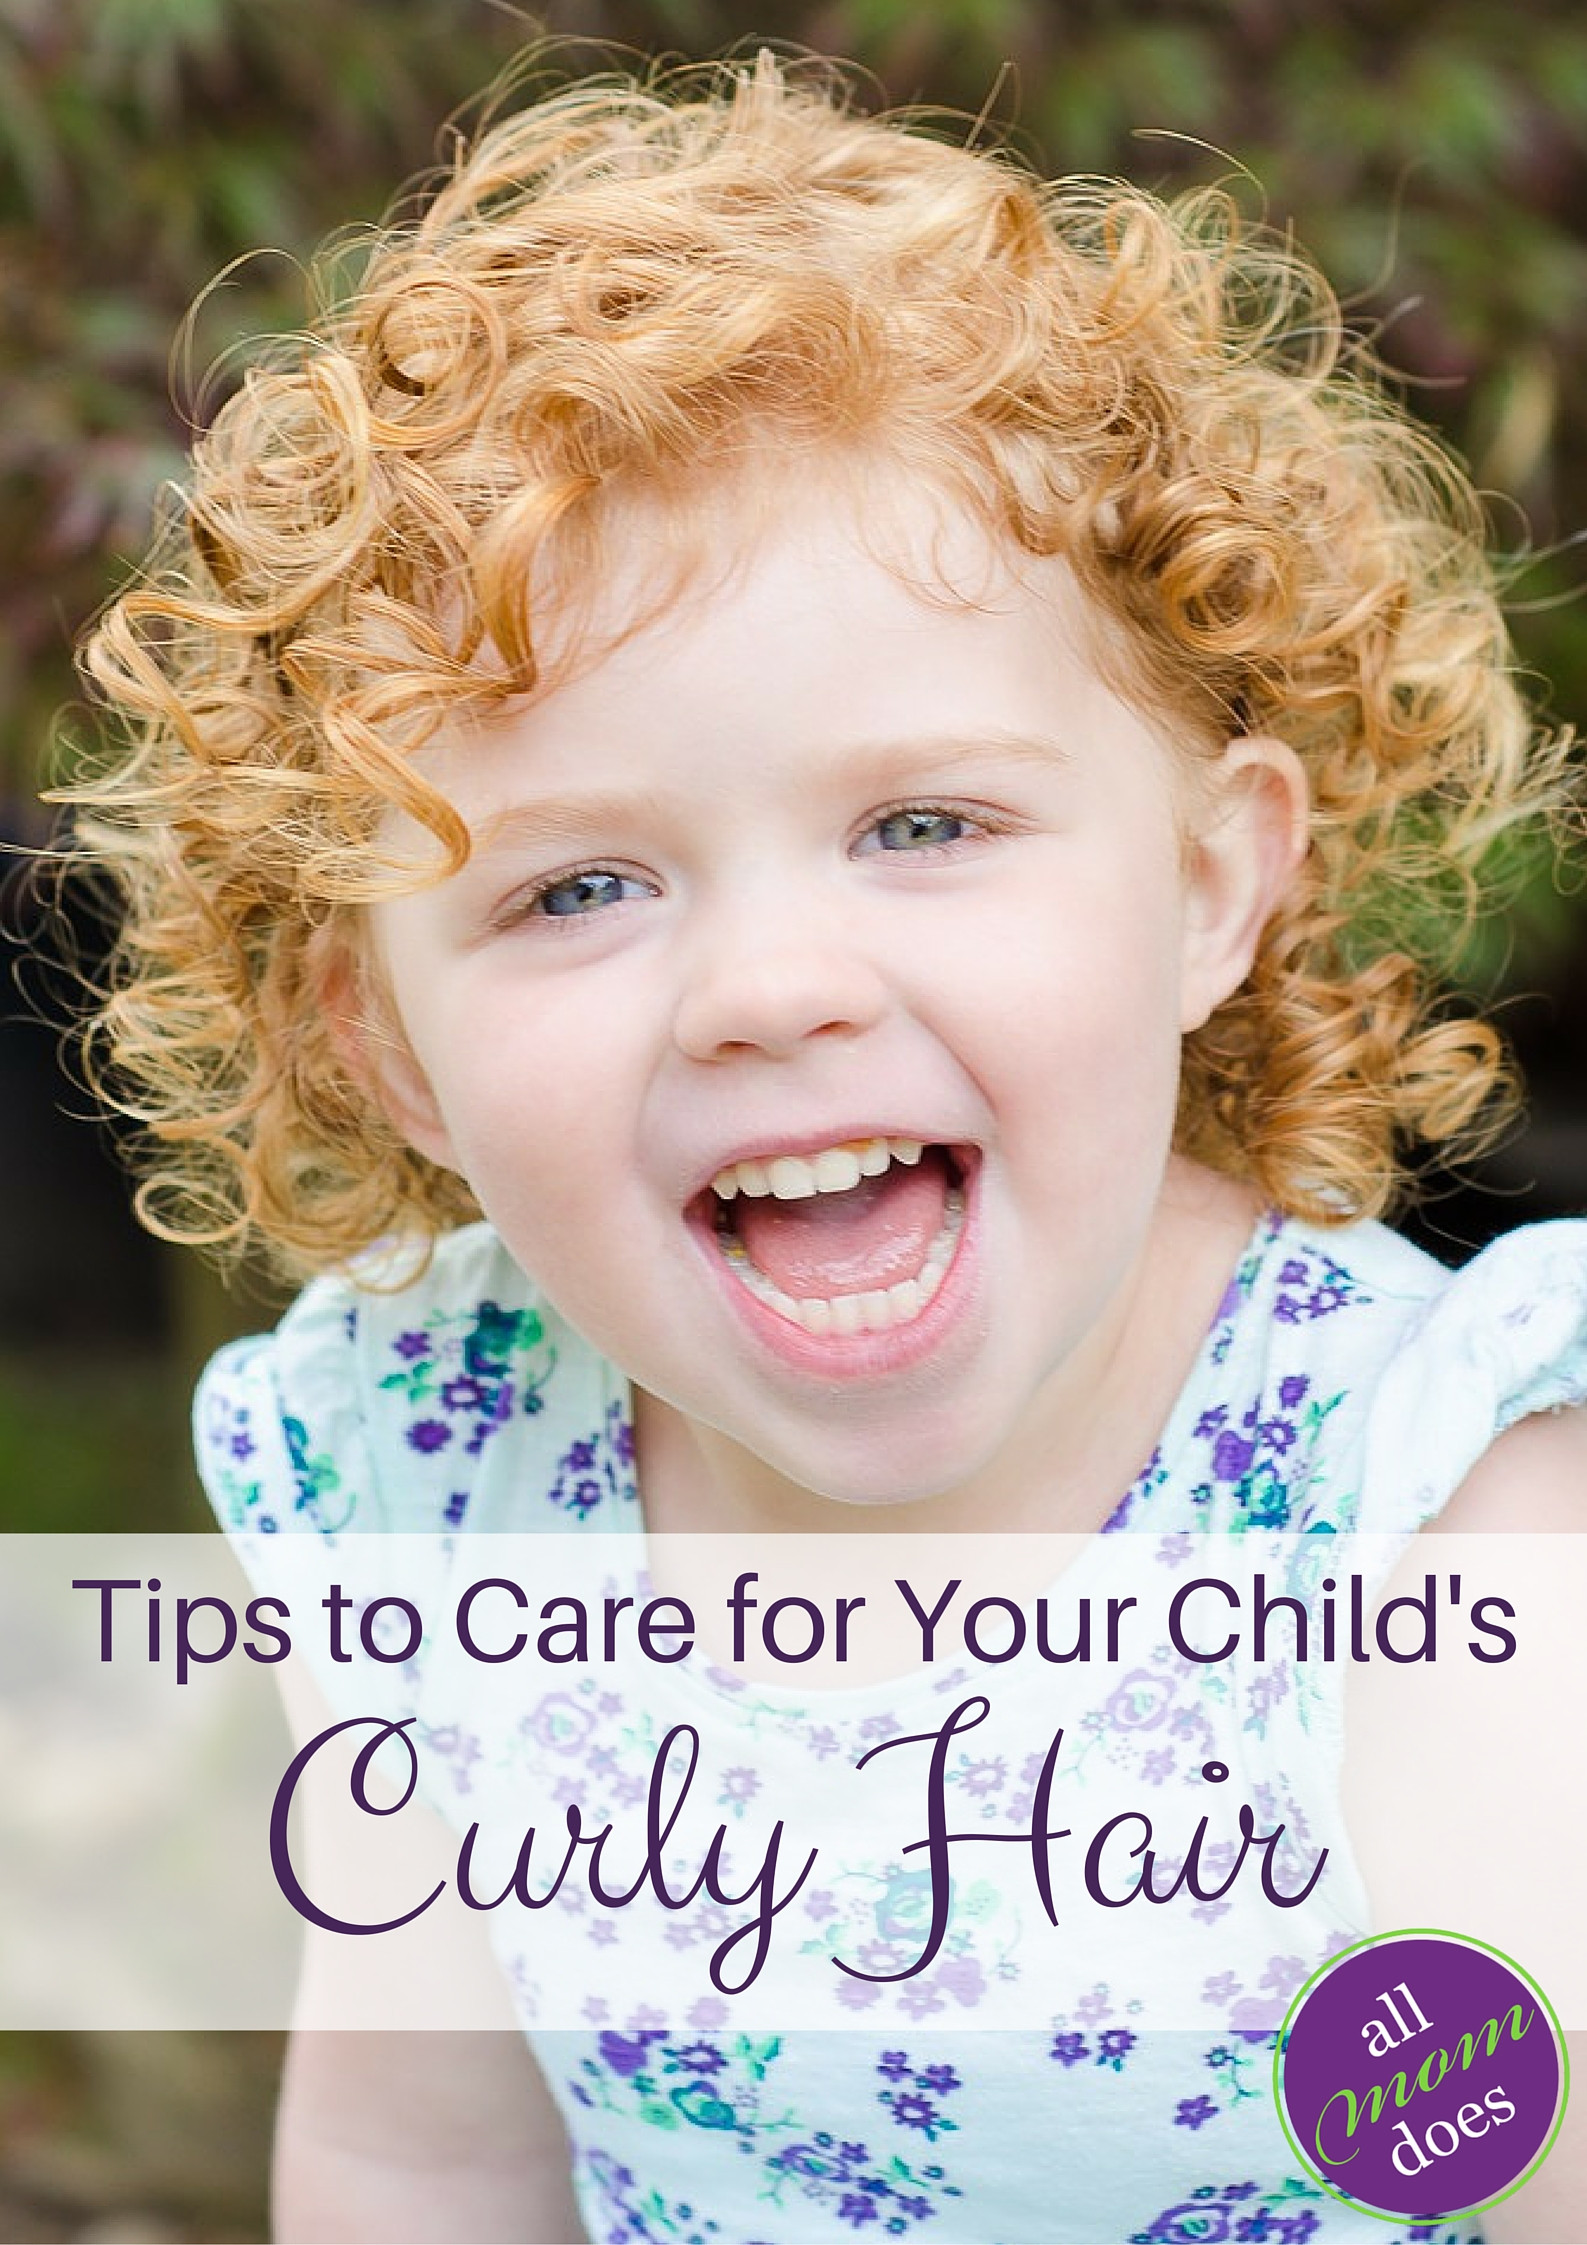 Hair Care For Kids  Tips to Care for Your Child's Curly Hair